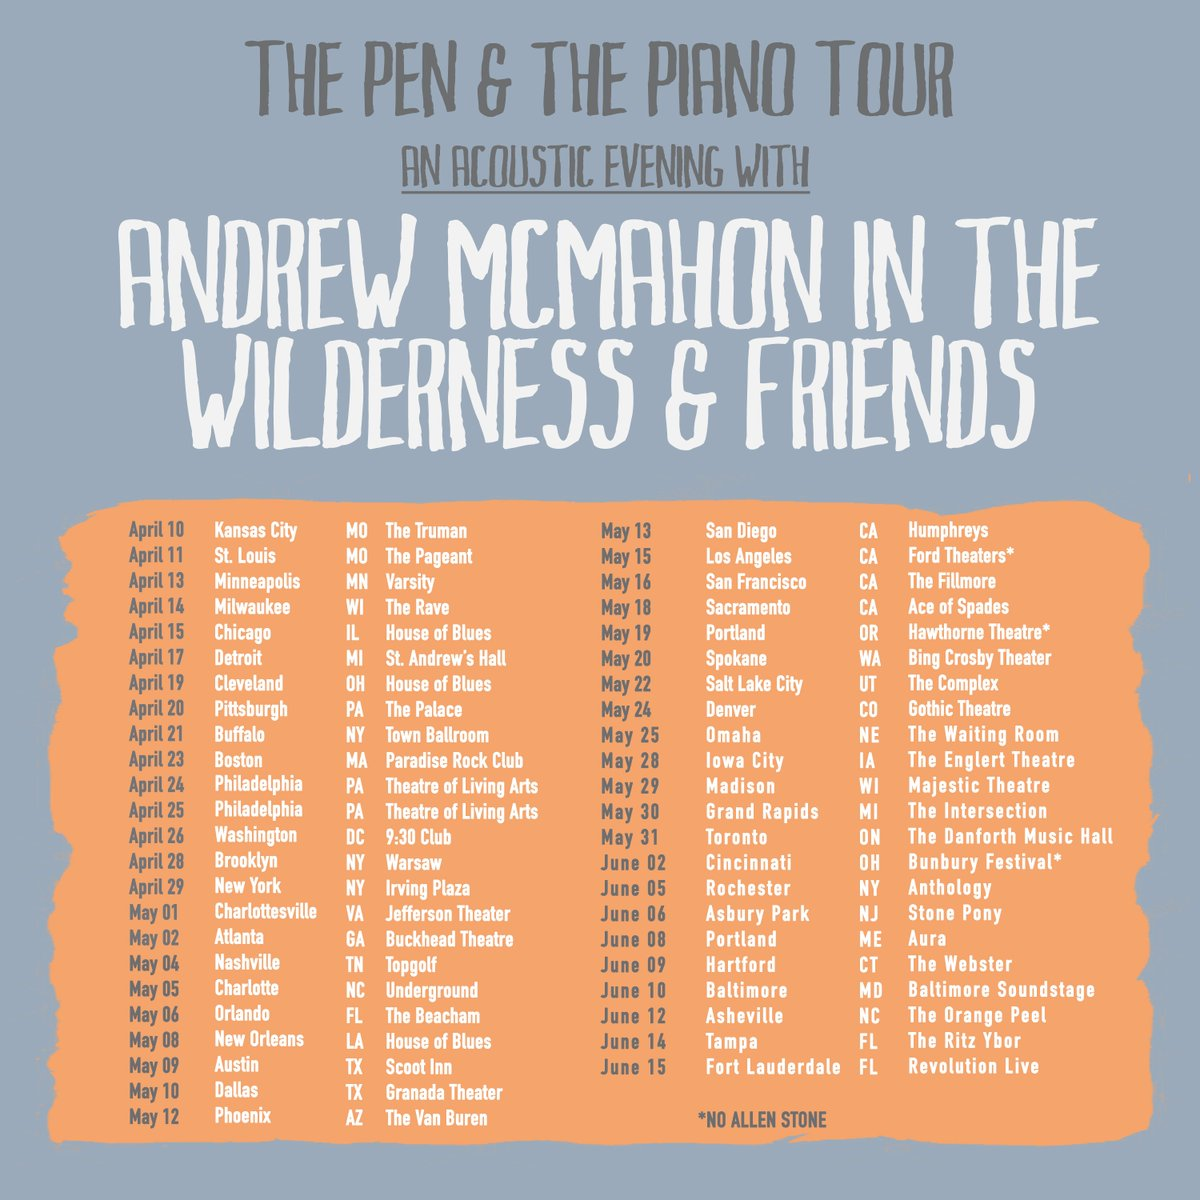 Andrew mcmahon on twitter vip packages include access to the andrew mcmahon on twitter vip packages include access to the soundcheck pizza party one t shirt one exclusive pin set and one screen printed lithograph m4hsunfo